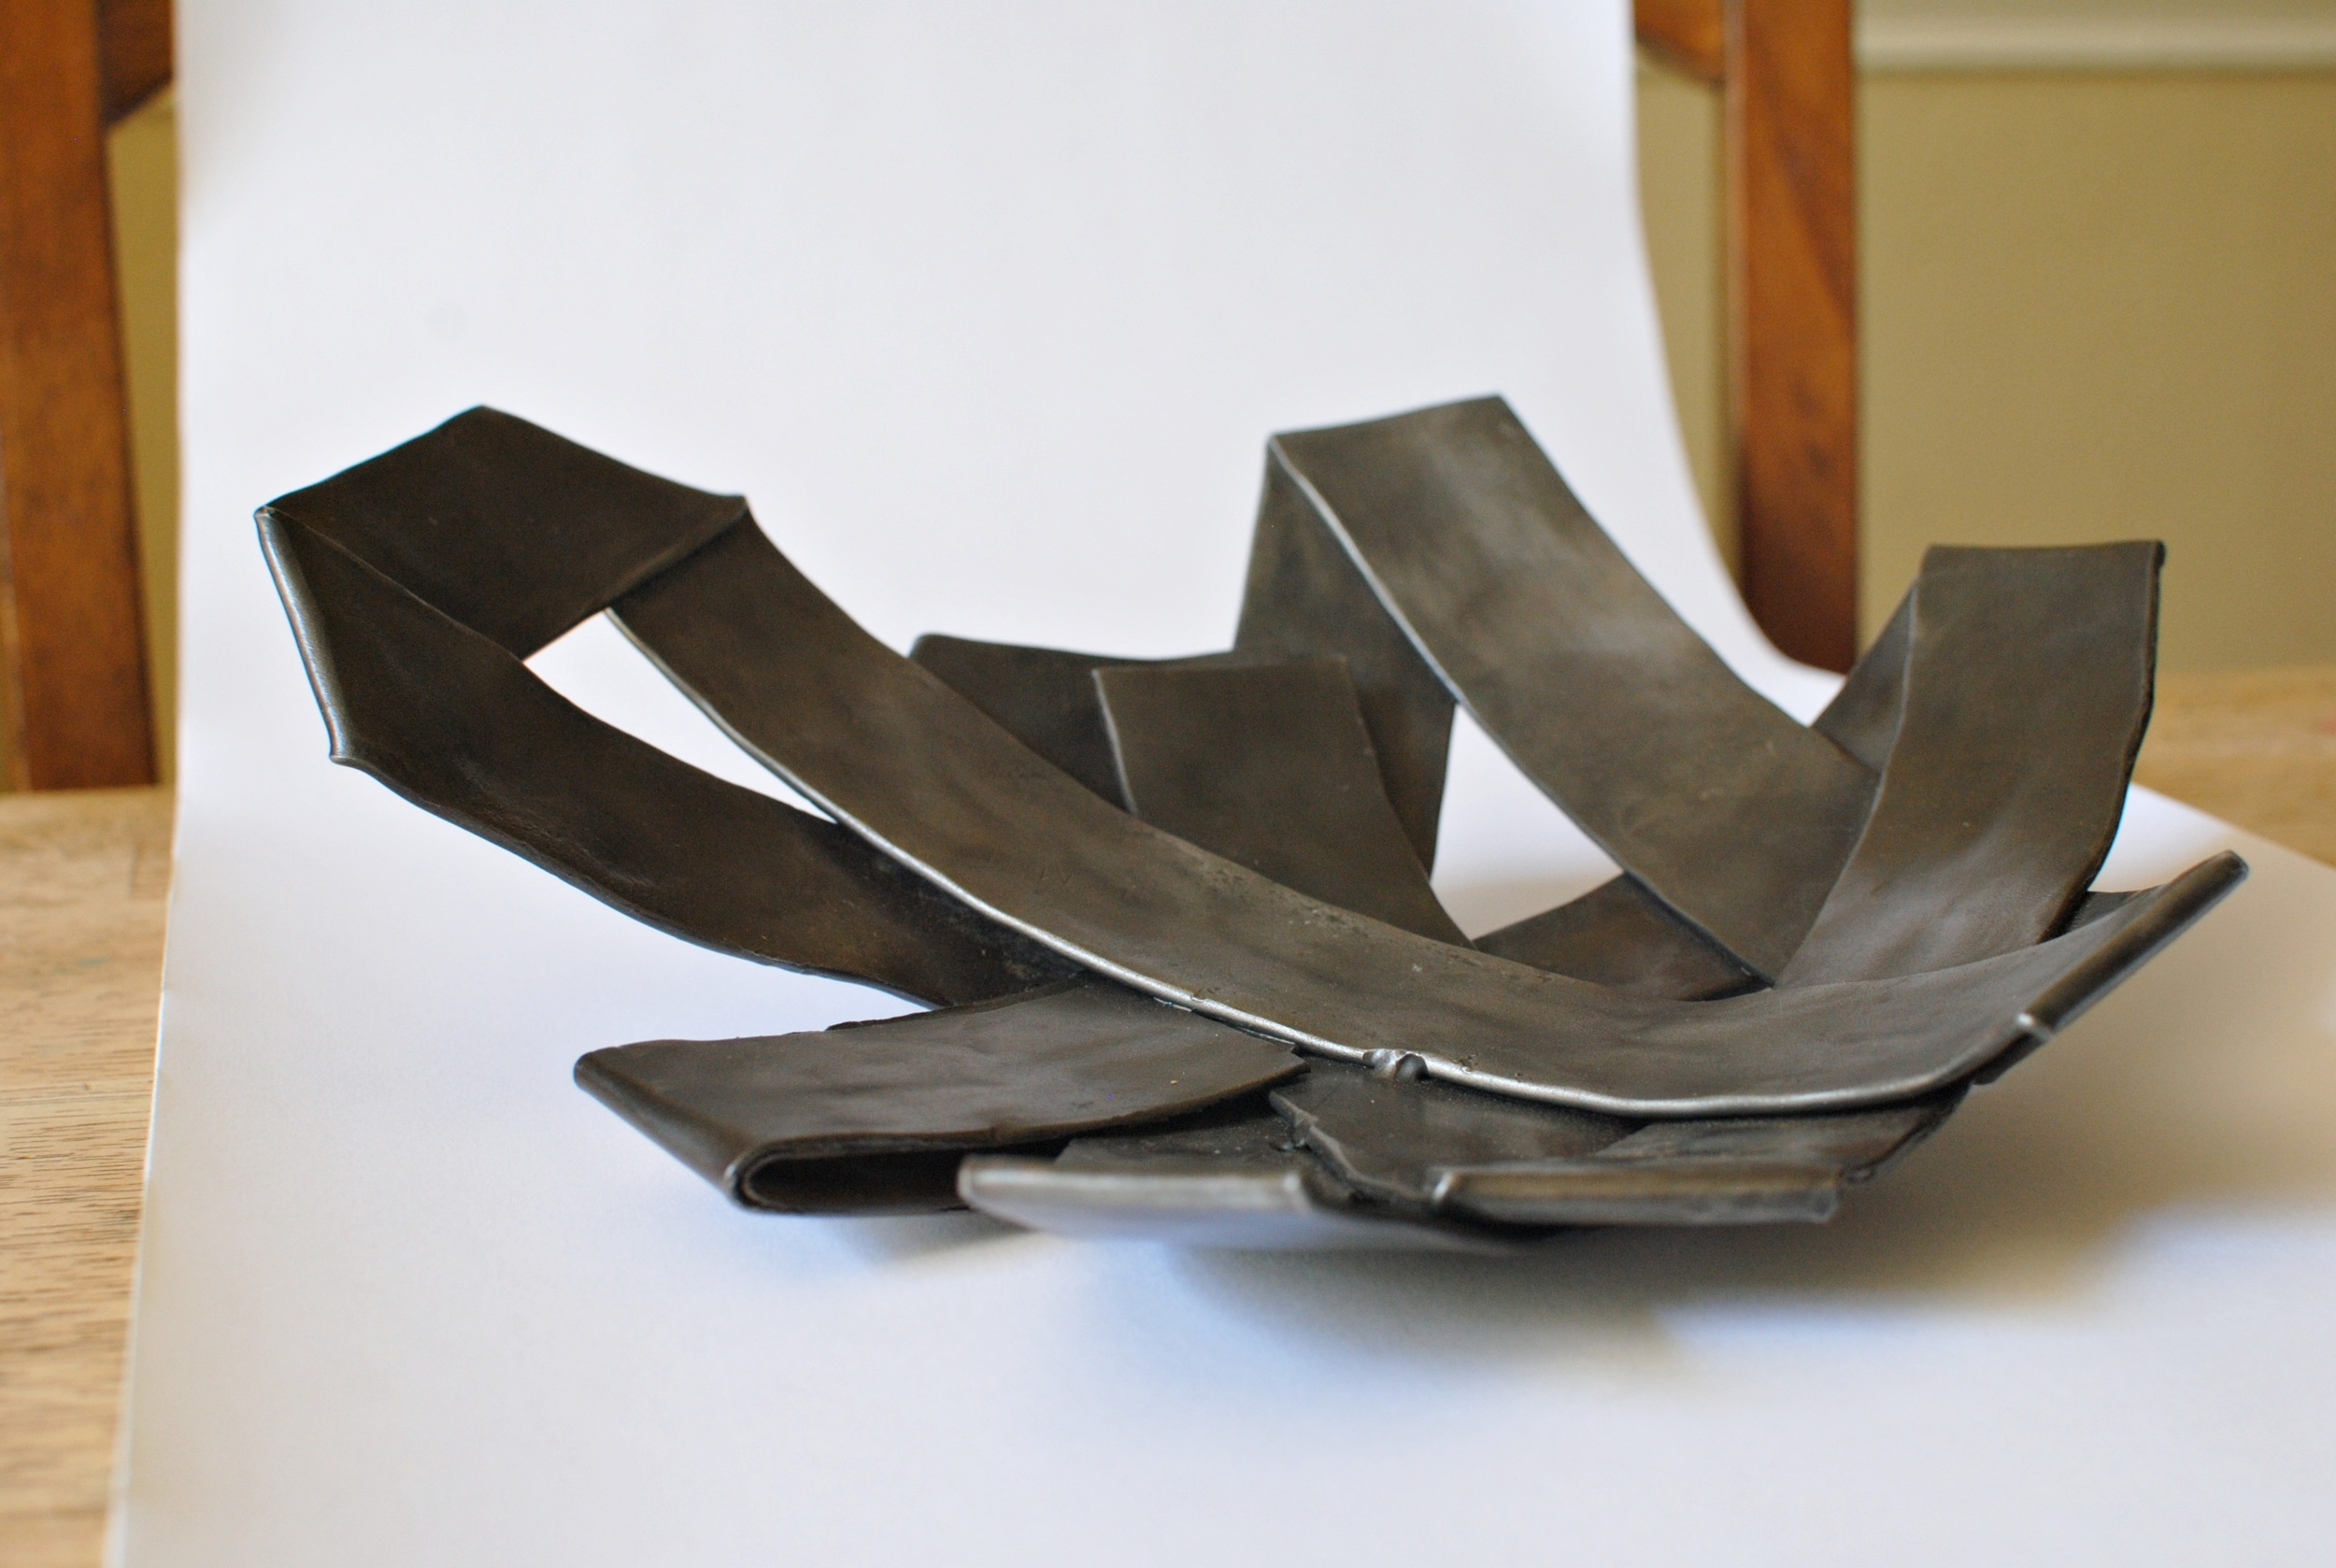 Decorative Folded Steel Bowl